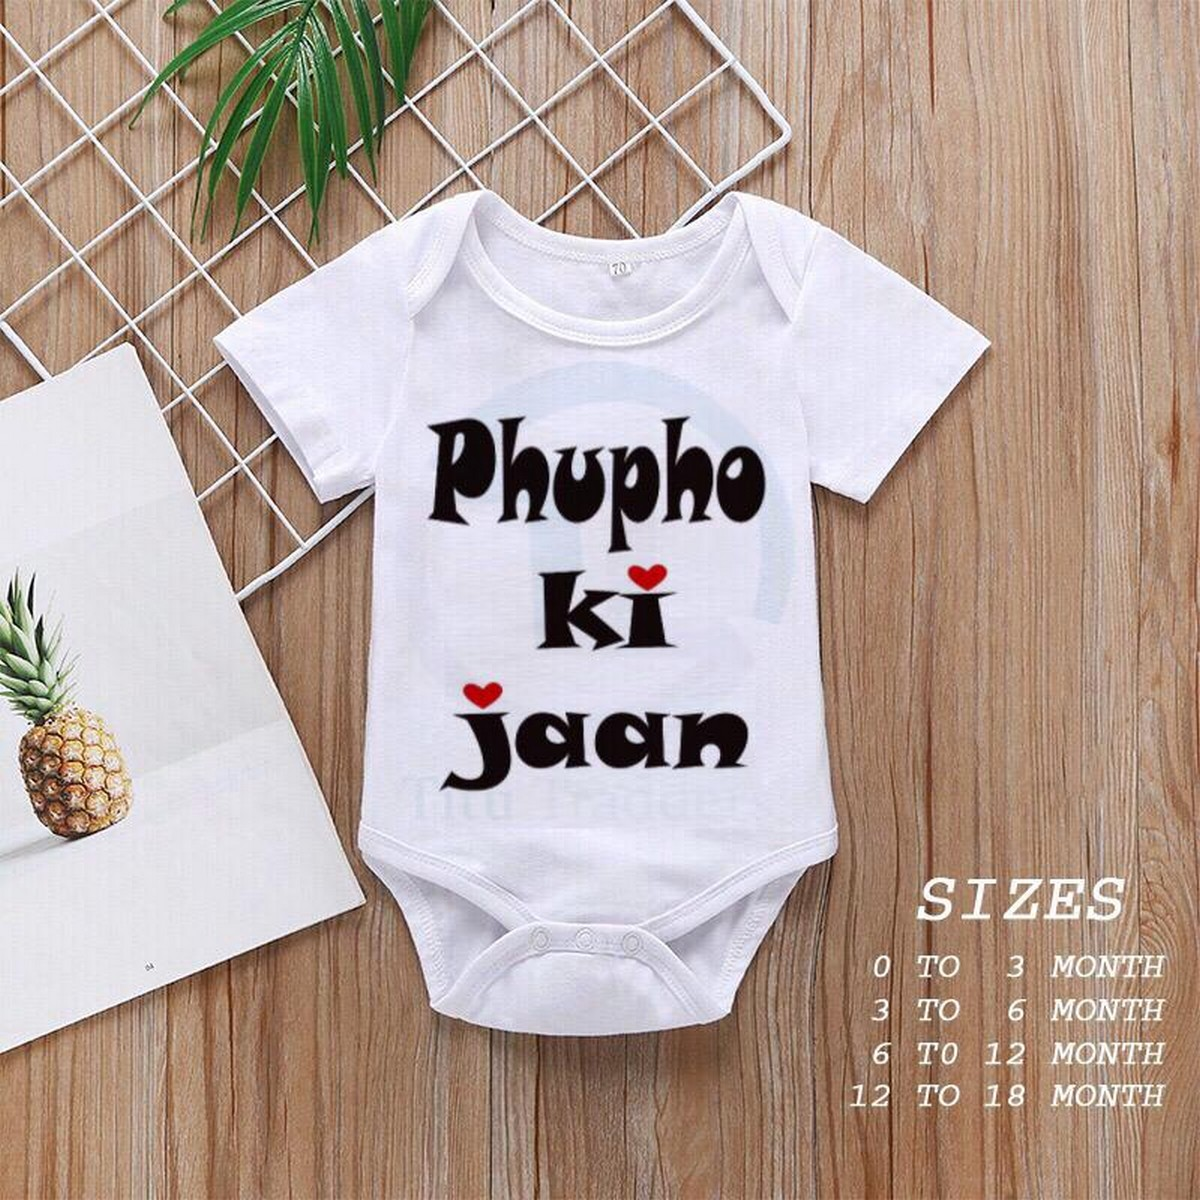 Baby Girls and Boys Half Sleeves Cotton Body suits Newborn to 18 Months, Baby Romper (Phupo ki jaan 02)